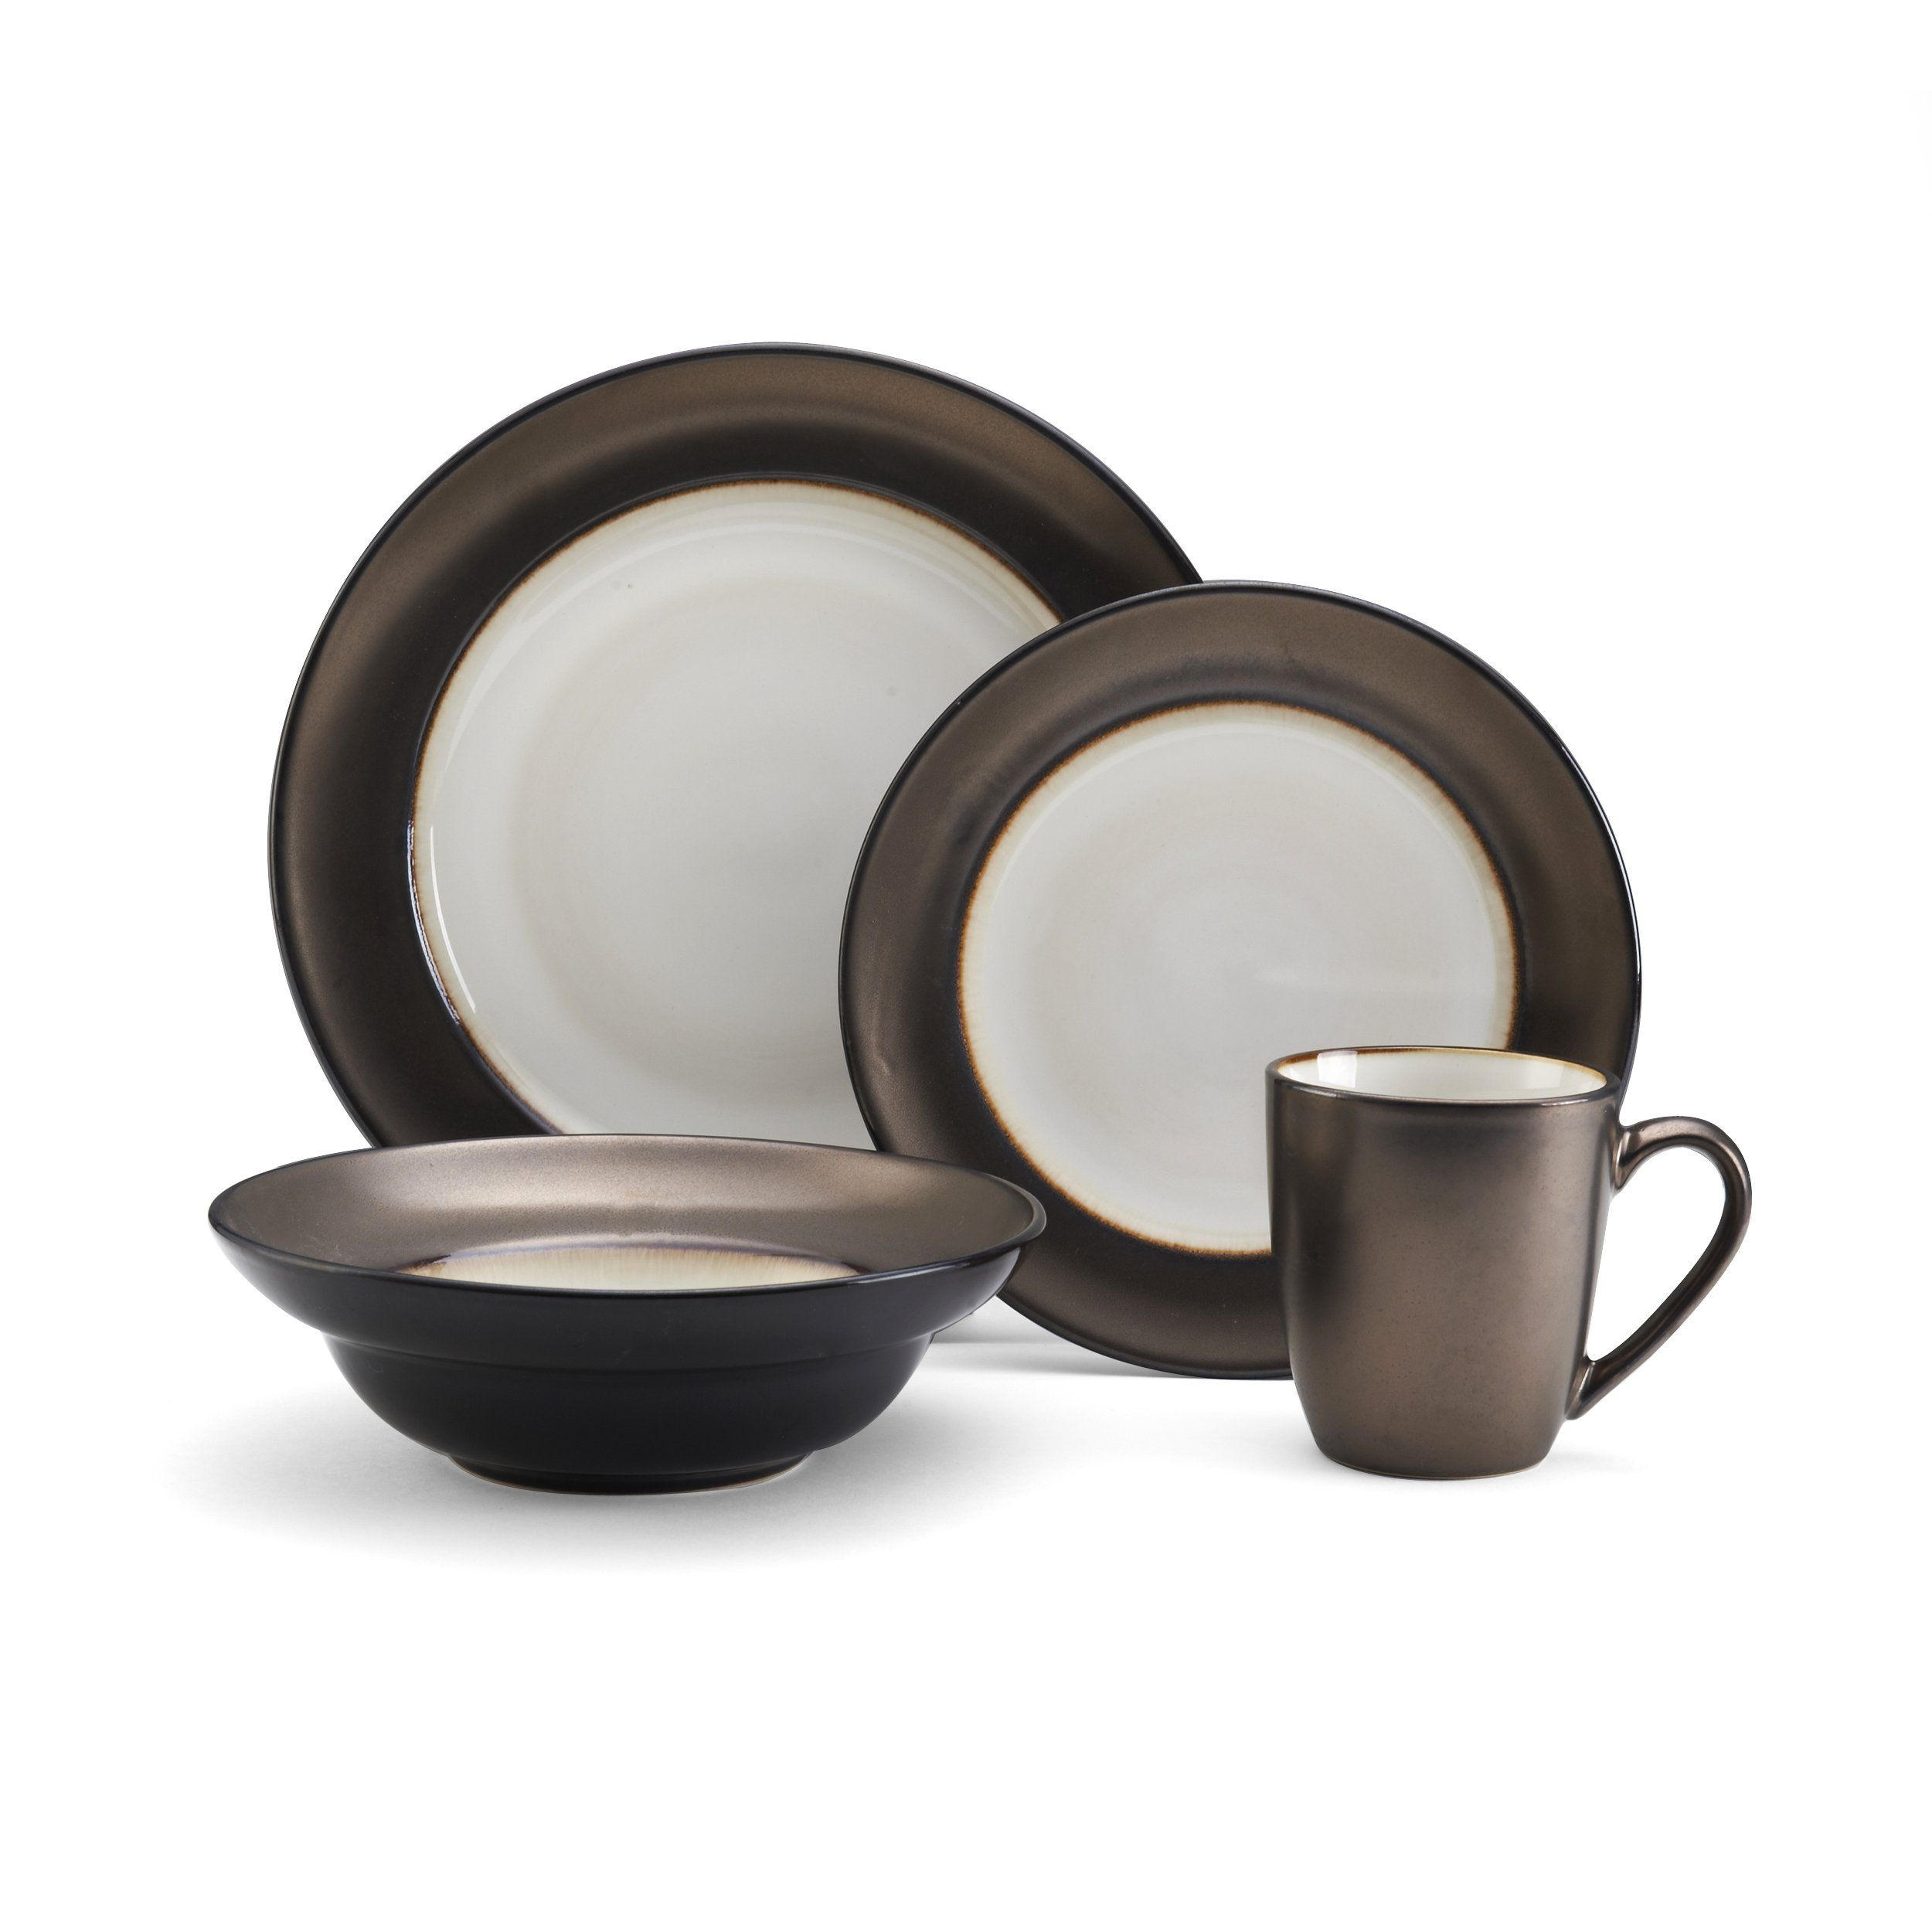 Pfaltzgraff Dorchester 16 Piece Dinnerware Set